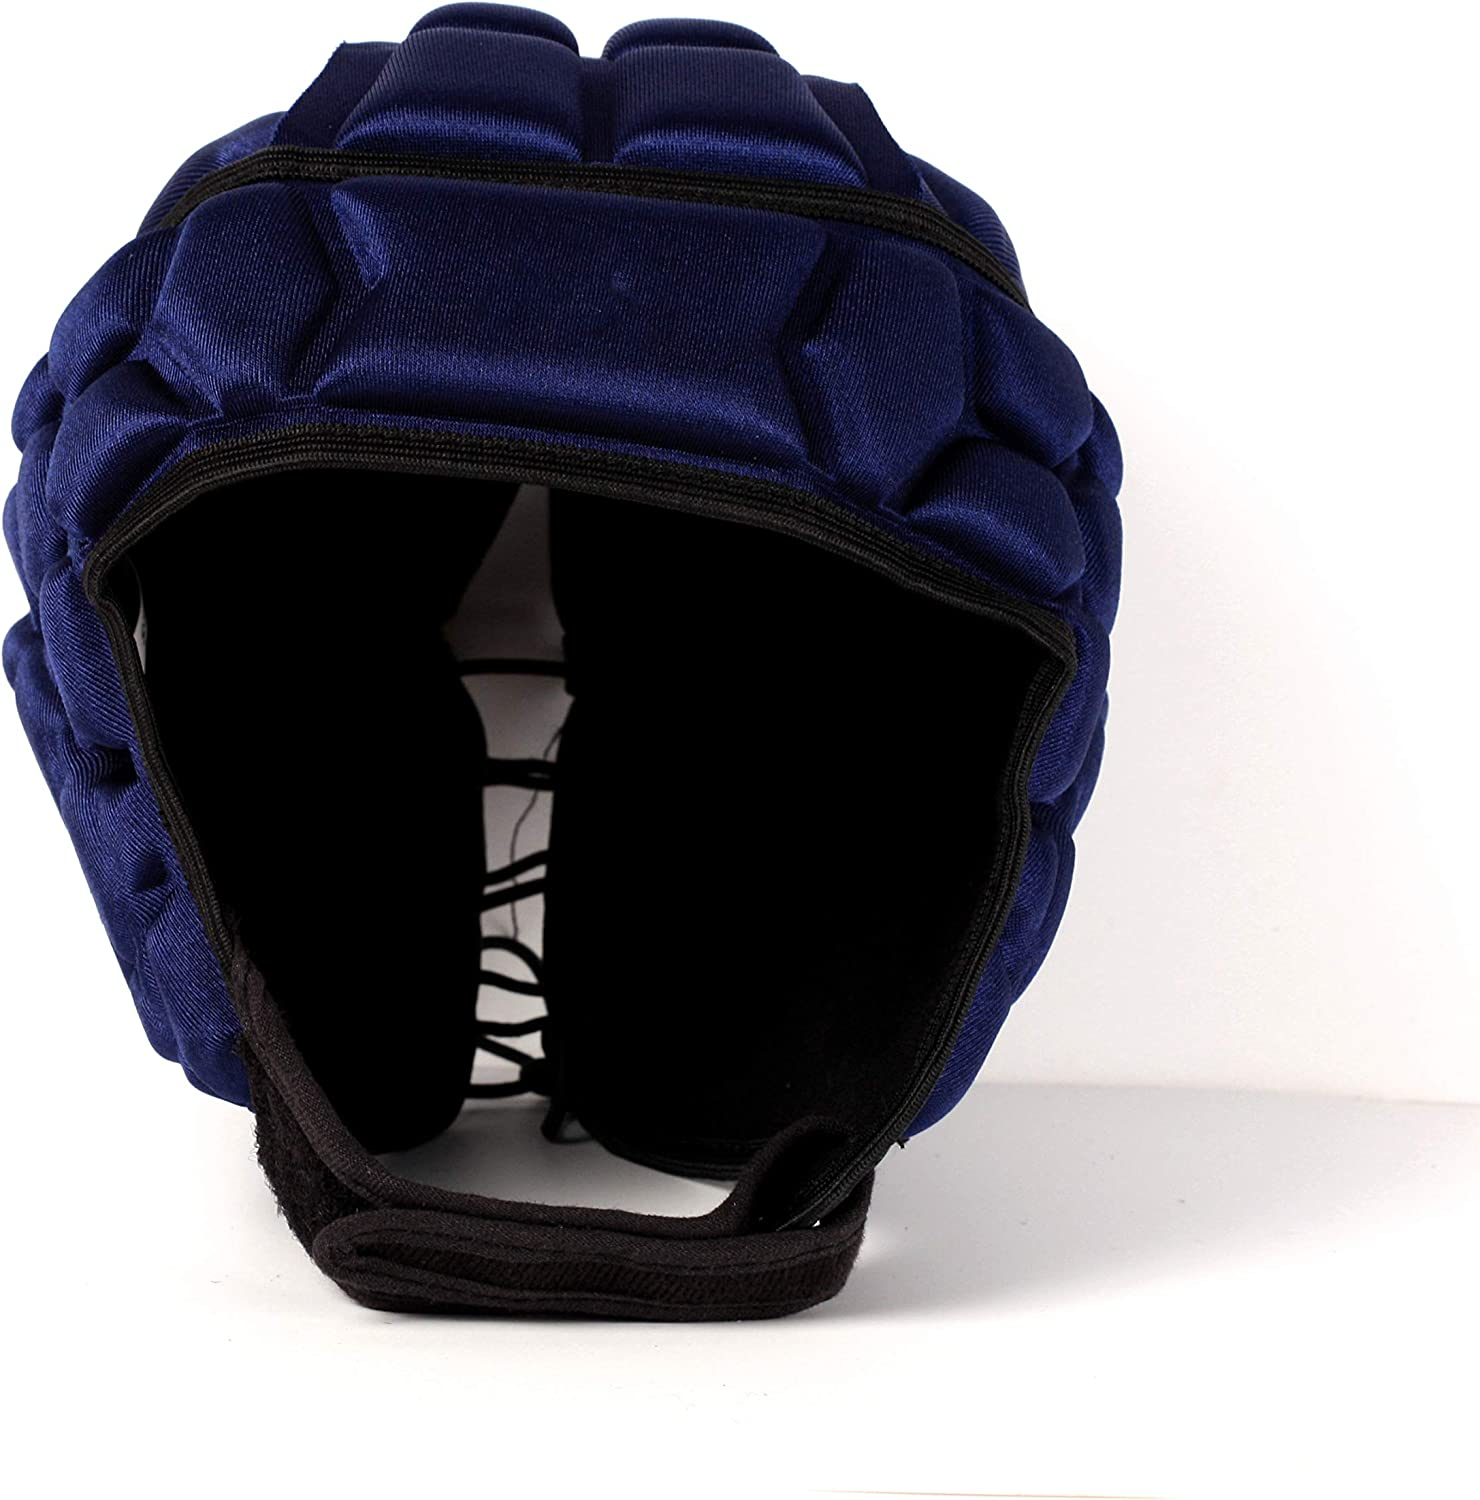 Barnett Heat Pro Helmet - Soft Padded Headgear - Rugby -Flag Football - Youth & Adult Sizing 7 on 7-7v7 Soft Shell (Navy Blue)